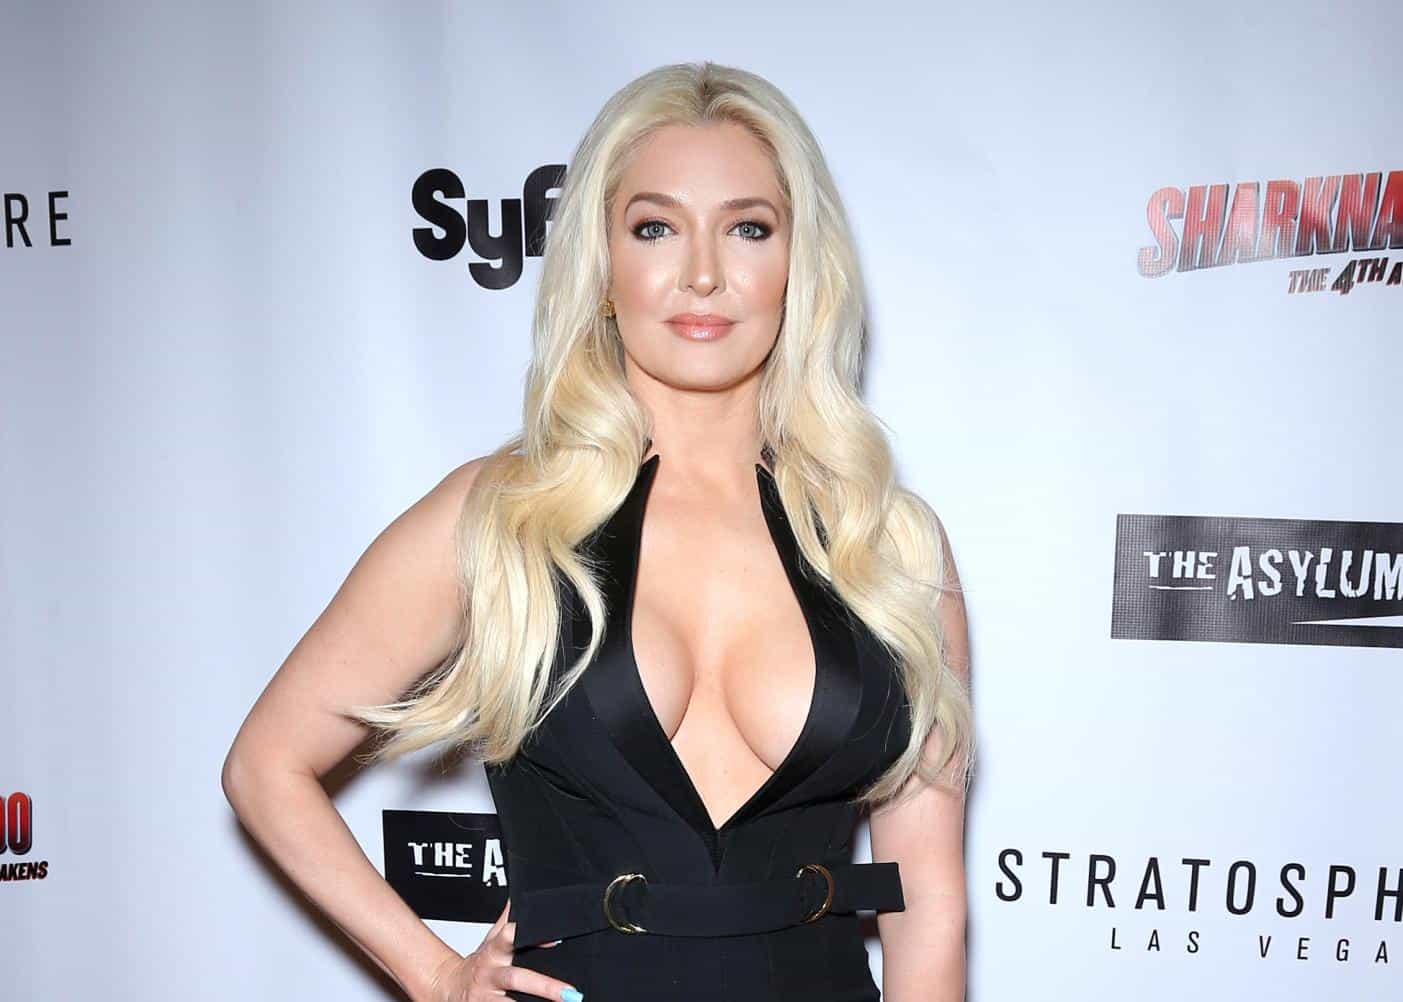 RHOBH Star Erika Jayne Hires New Attorney After Former Representation Dropped Her Following Hulu's Housewife and the Hustler Documentary